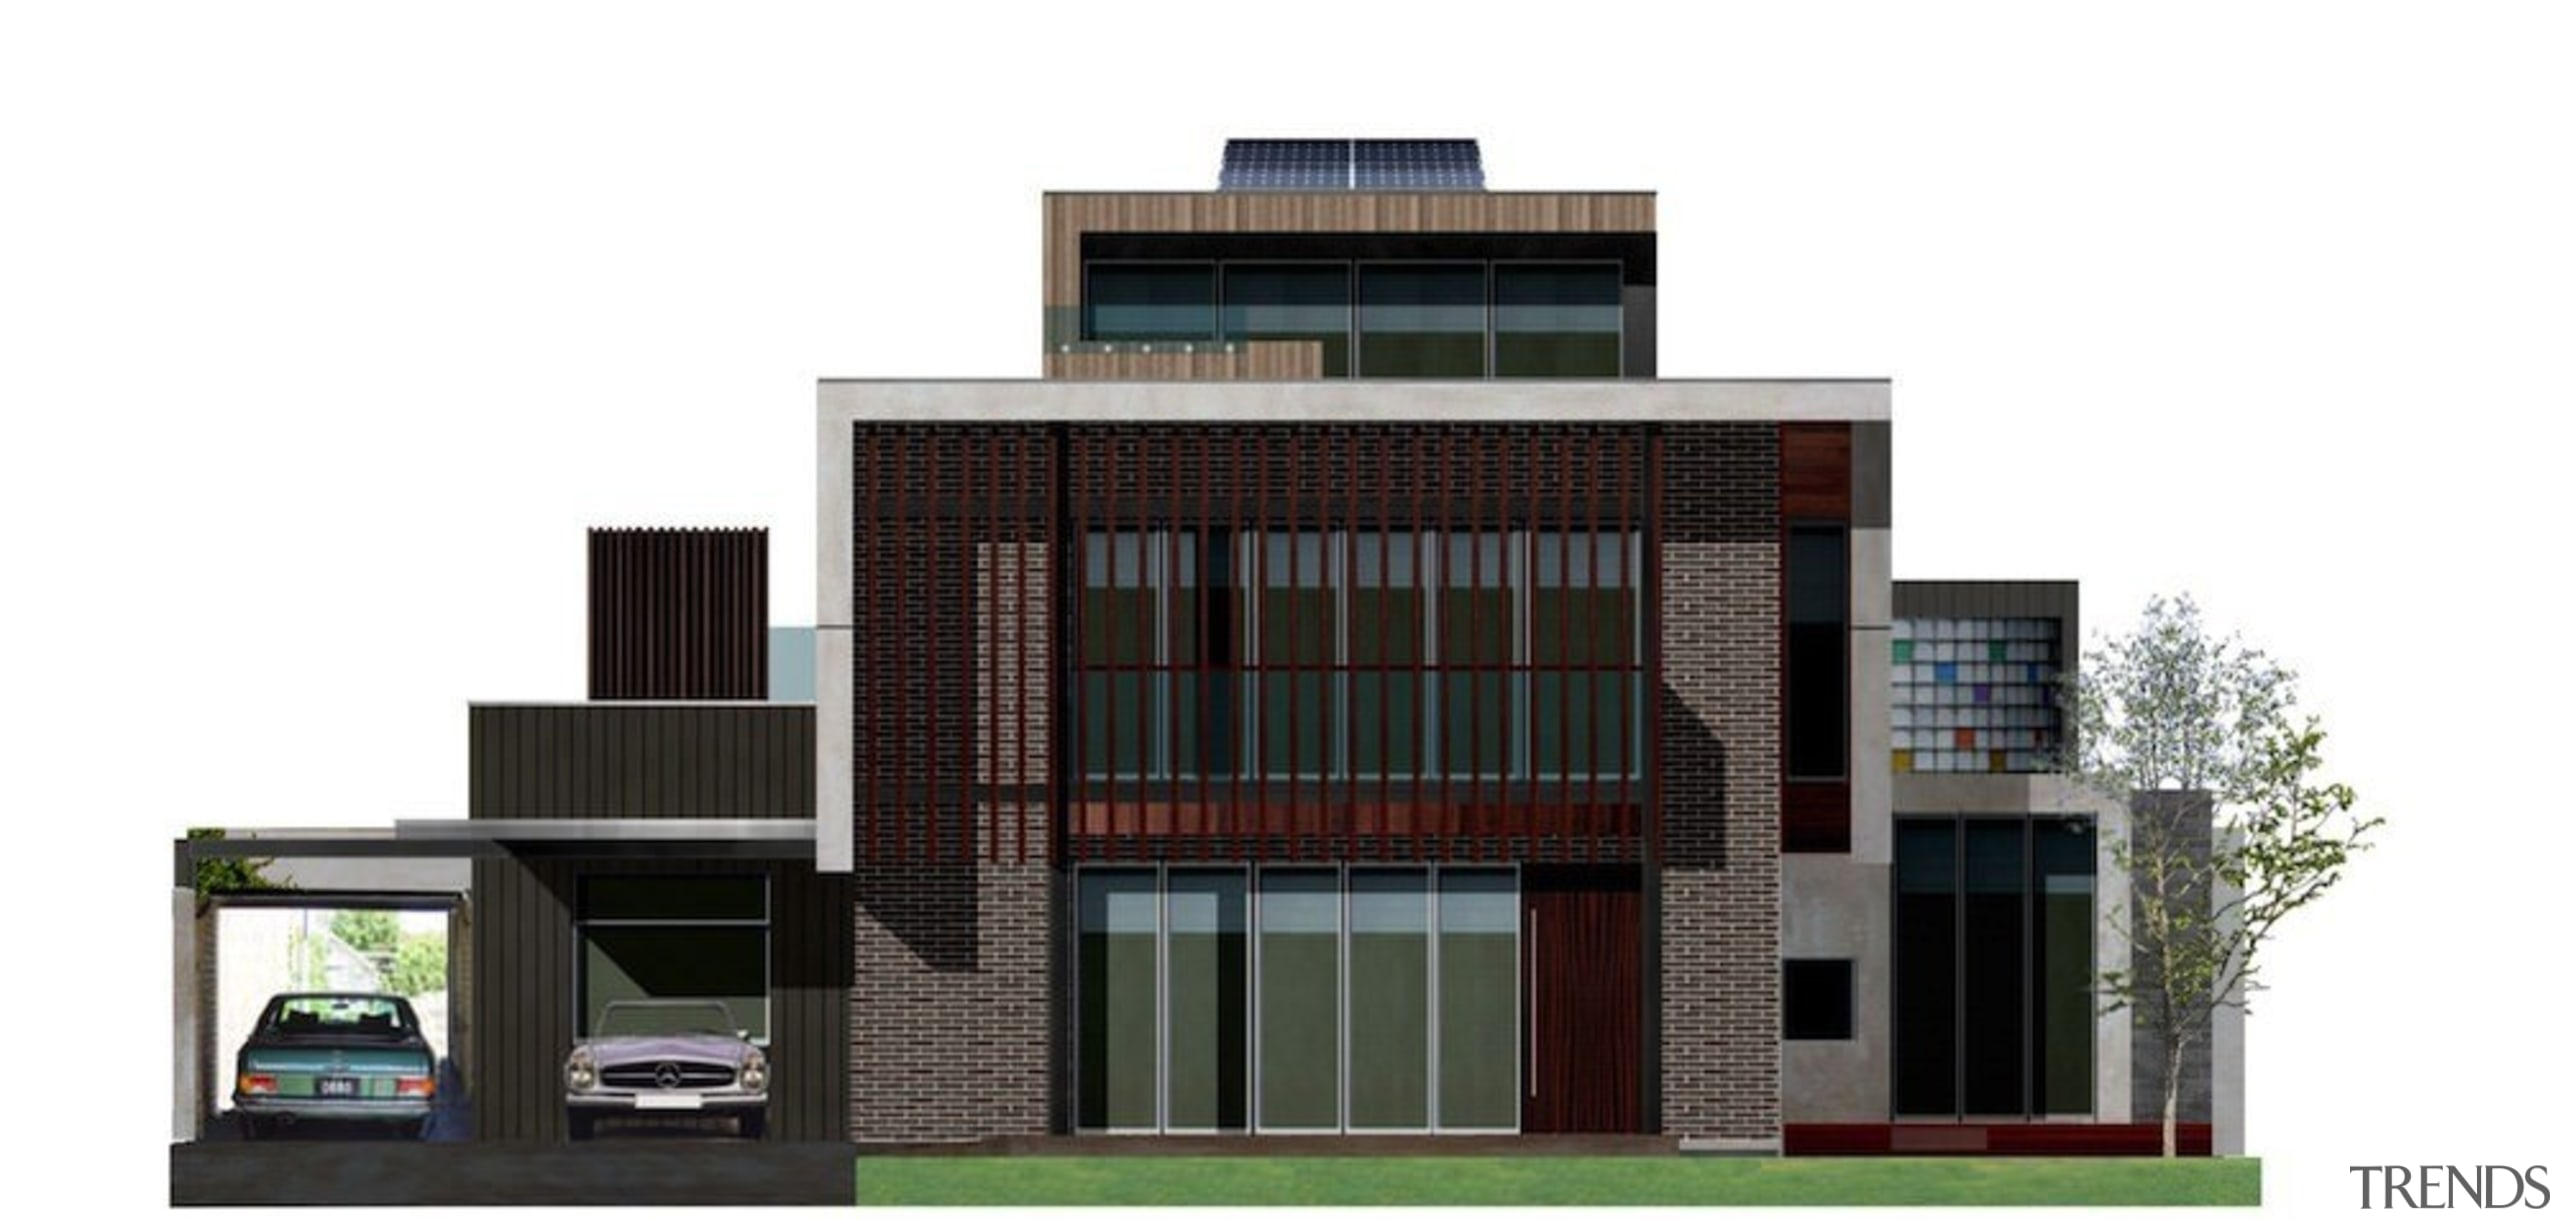 A render of the home - A render architecture, building, commercial building, condominium, elevation, facade, home, house, mixed use, property, real estate, residential area, white, black